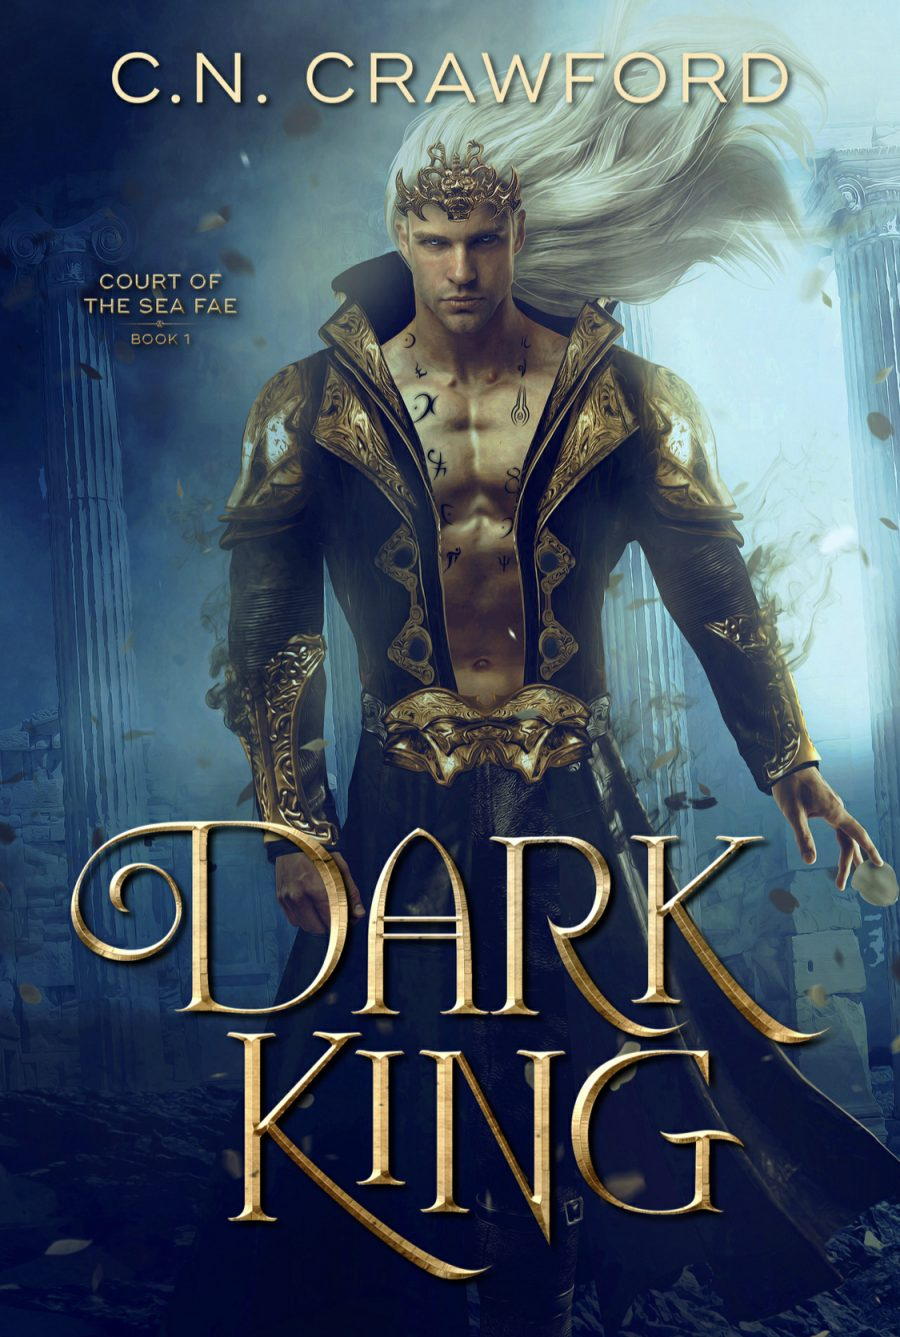 Dark King by C.N. Crawford - A Book Review #BookReview #UF #PNR #Dystopian #Fae #Romance #Paranormal #Magic #4Stars #KindleUnlimited #KU